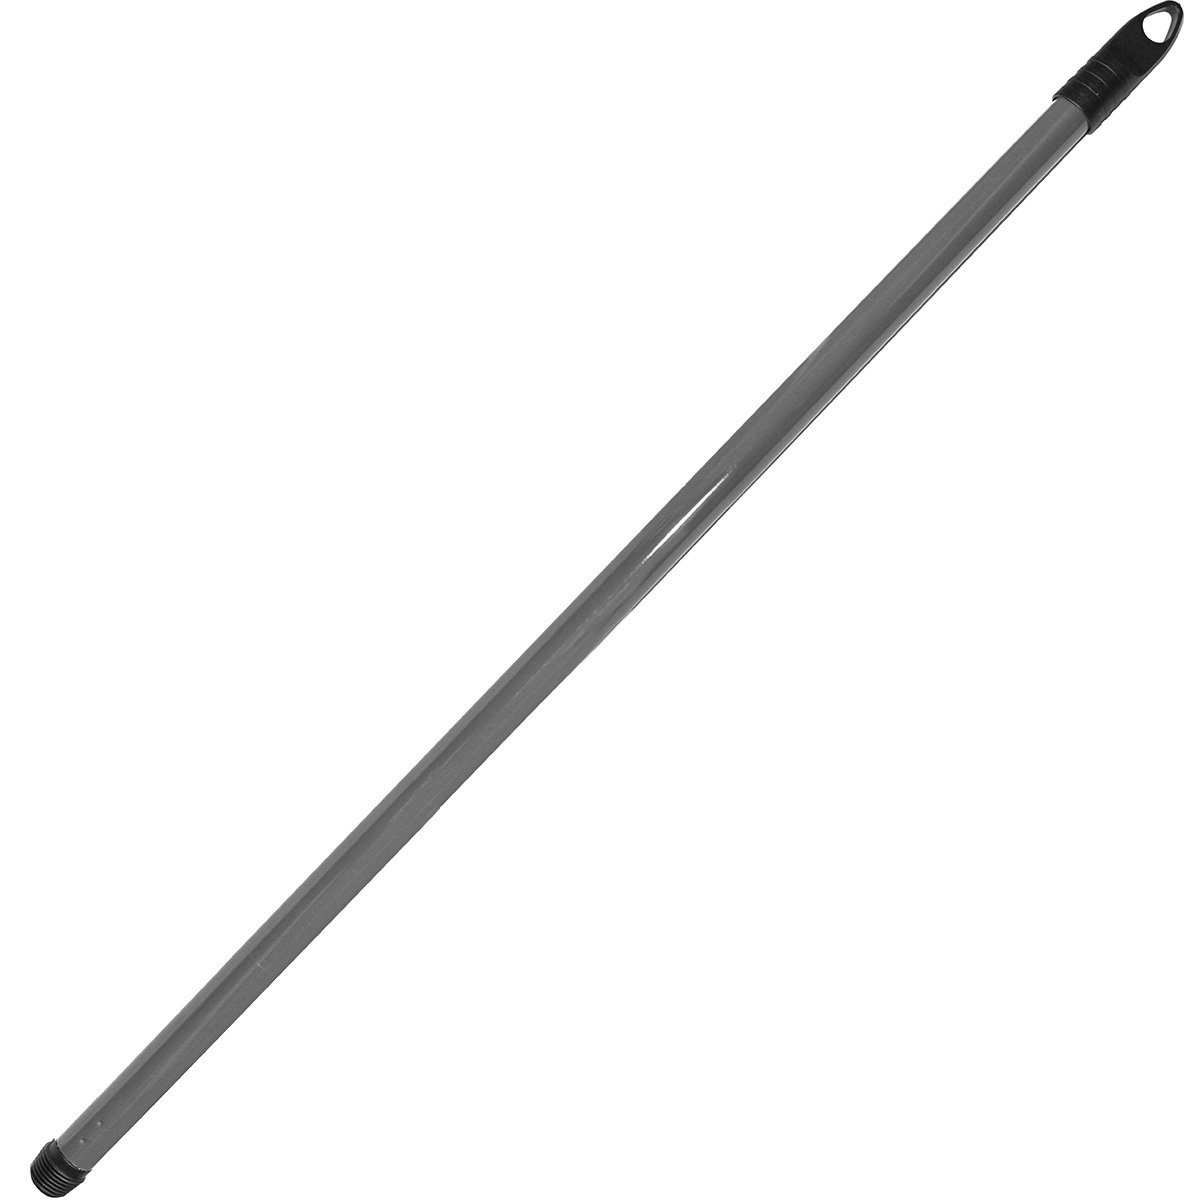 Bürstenmann Metal Broom Handle, 130cm/22 mm, Grey